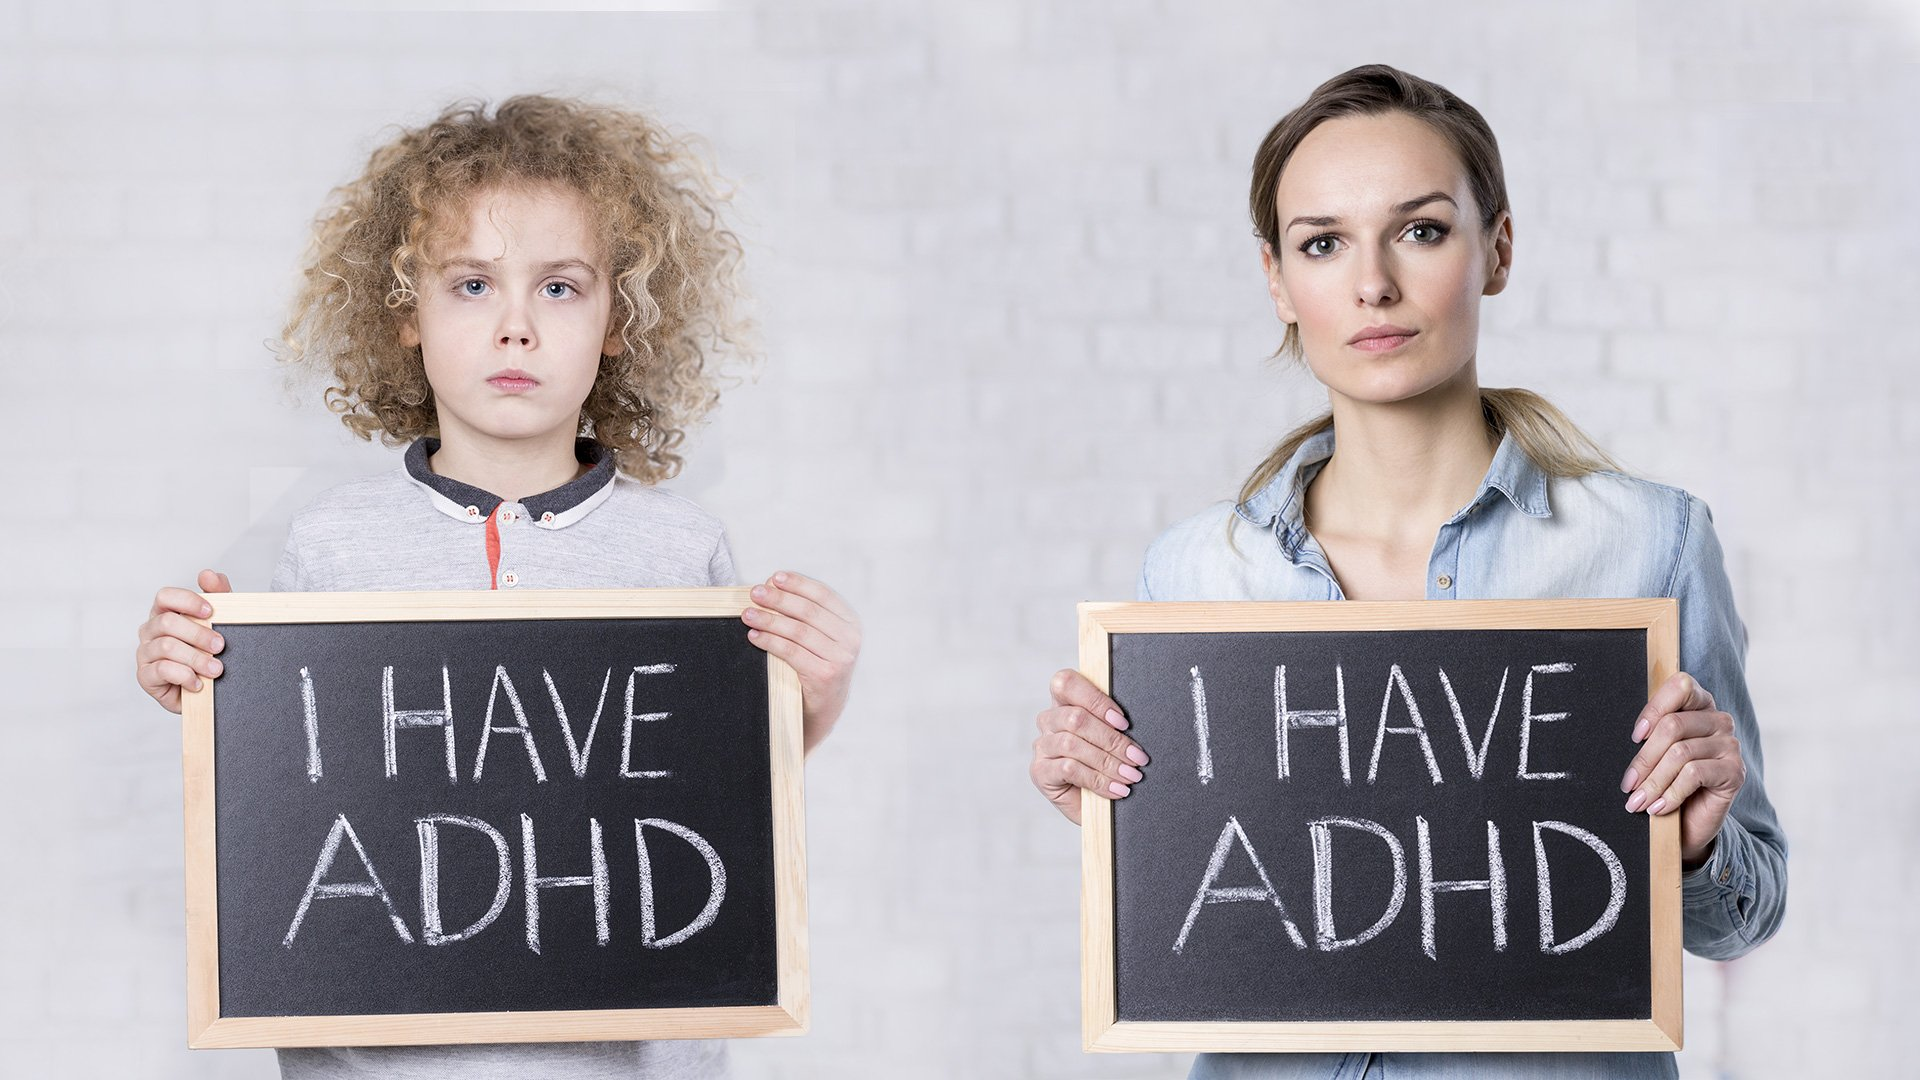 5 things to know about ADHD